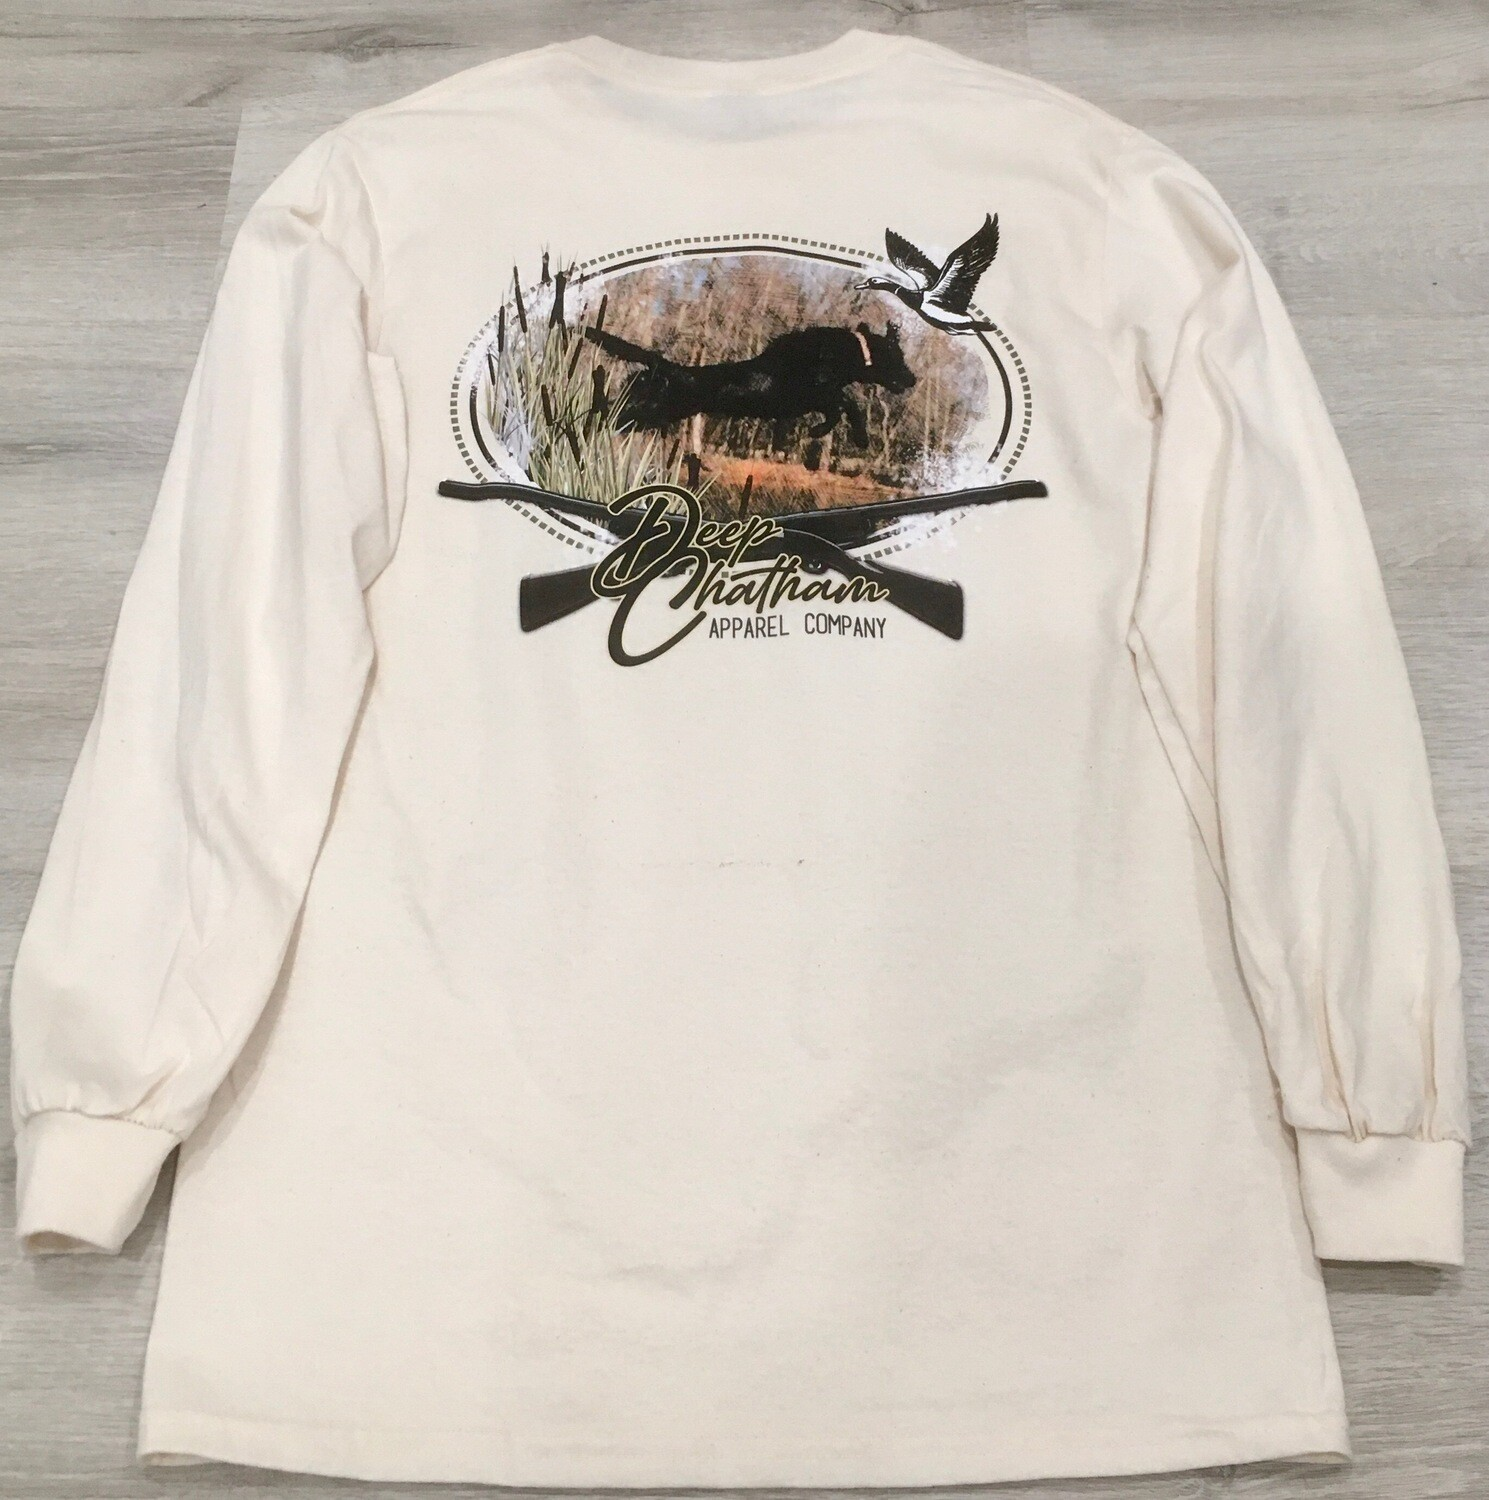 Deep Chatham Chasing Cattails long sleeve tee